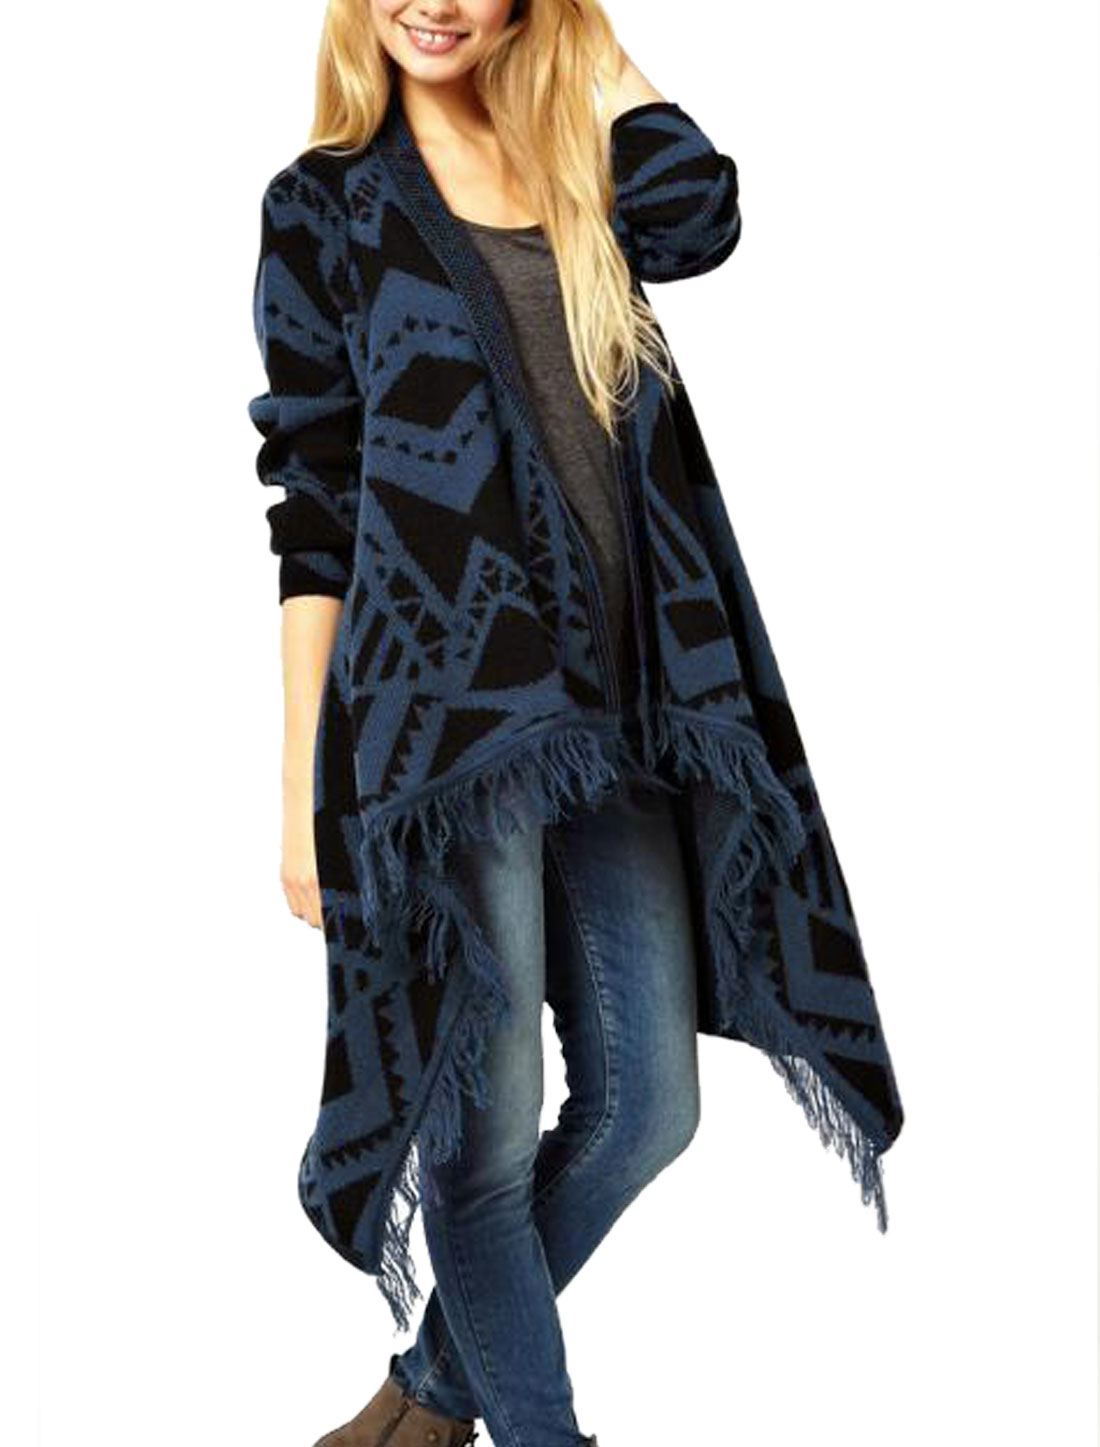 Lady Navy Blue Black Geometric Patterns Irregular Hem Tassel Edge Tunic Cardigan S